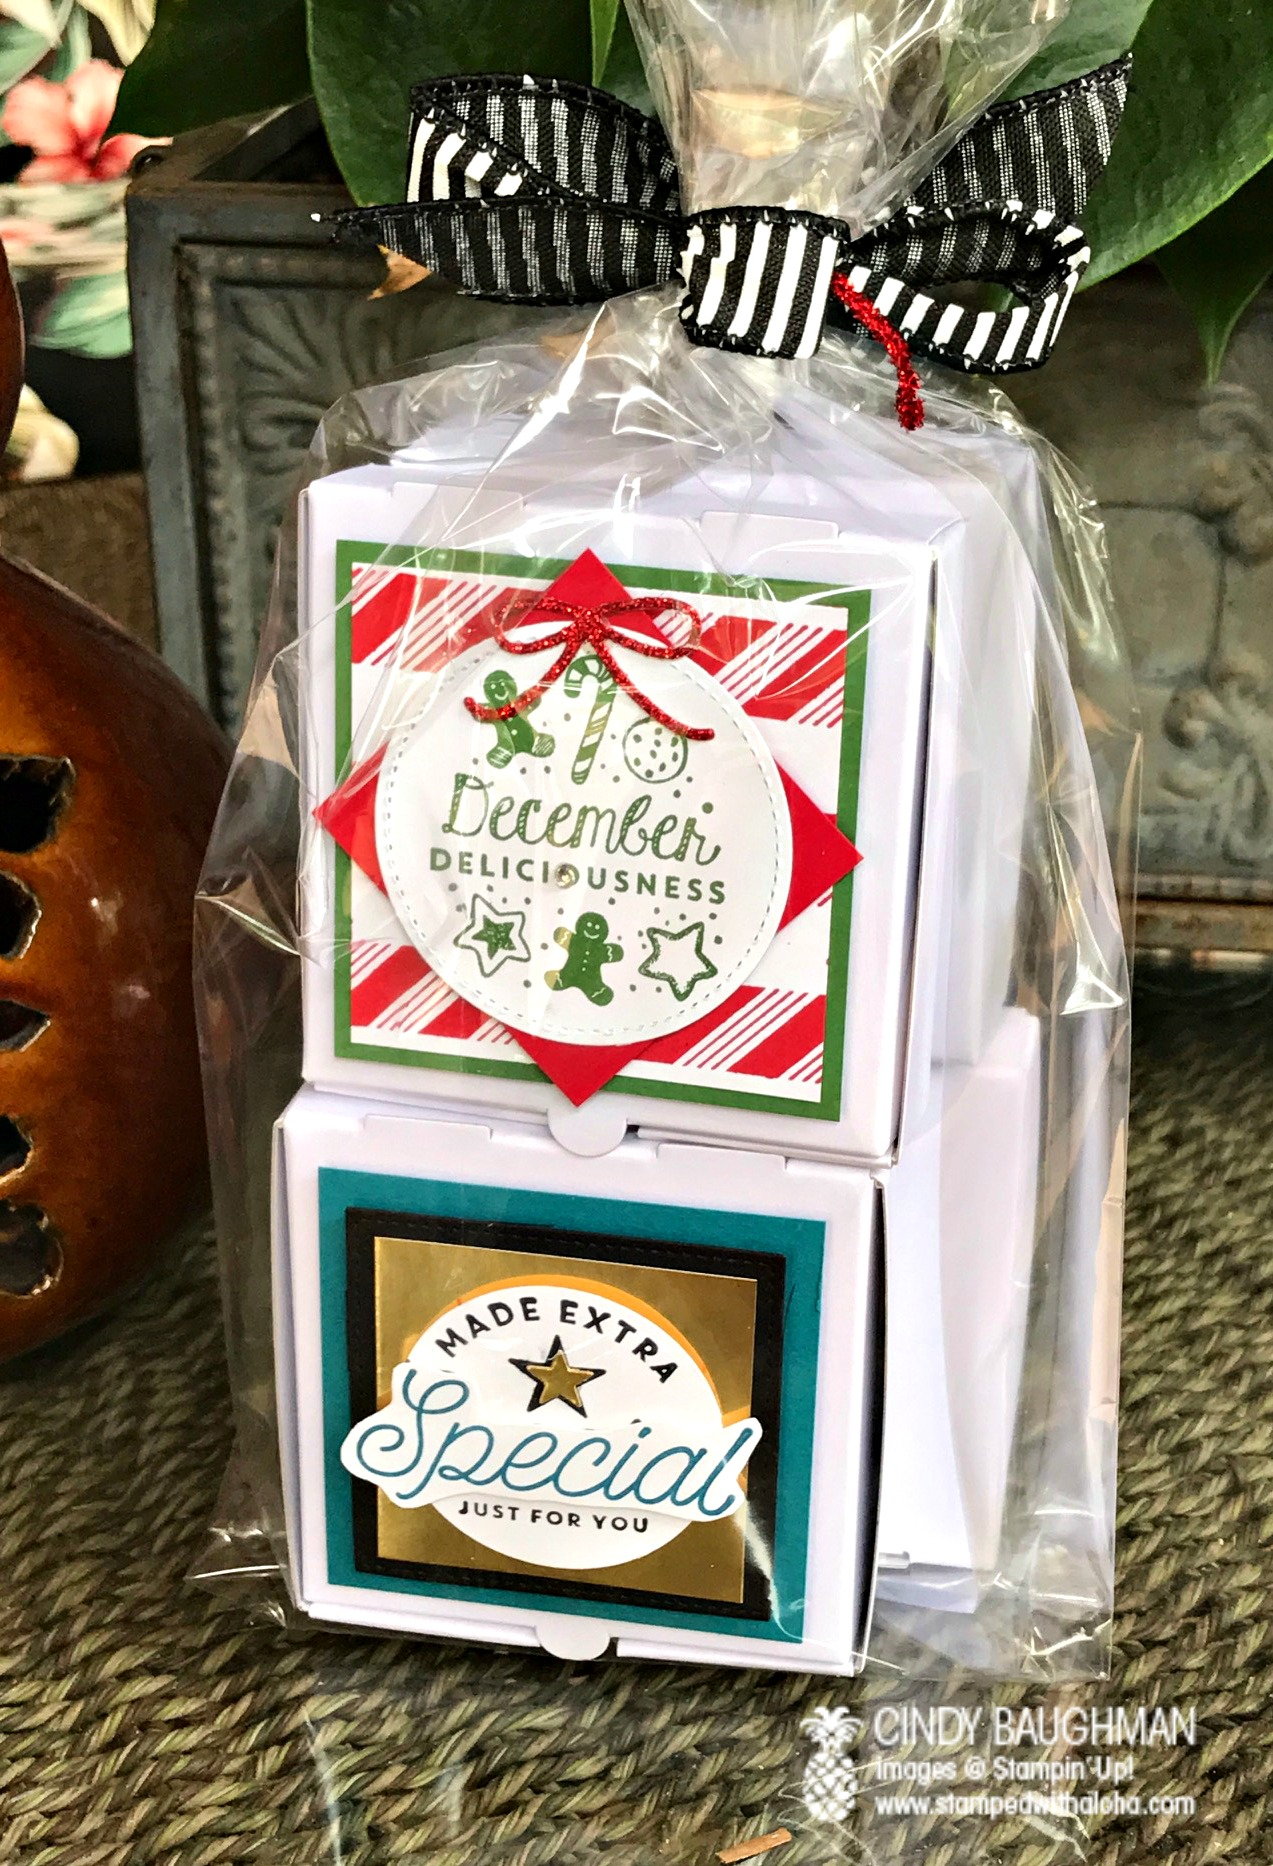 Stampin' Up! Pizza Boxes - www.stampedwithaloha.com